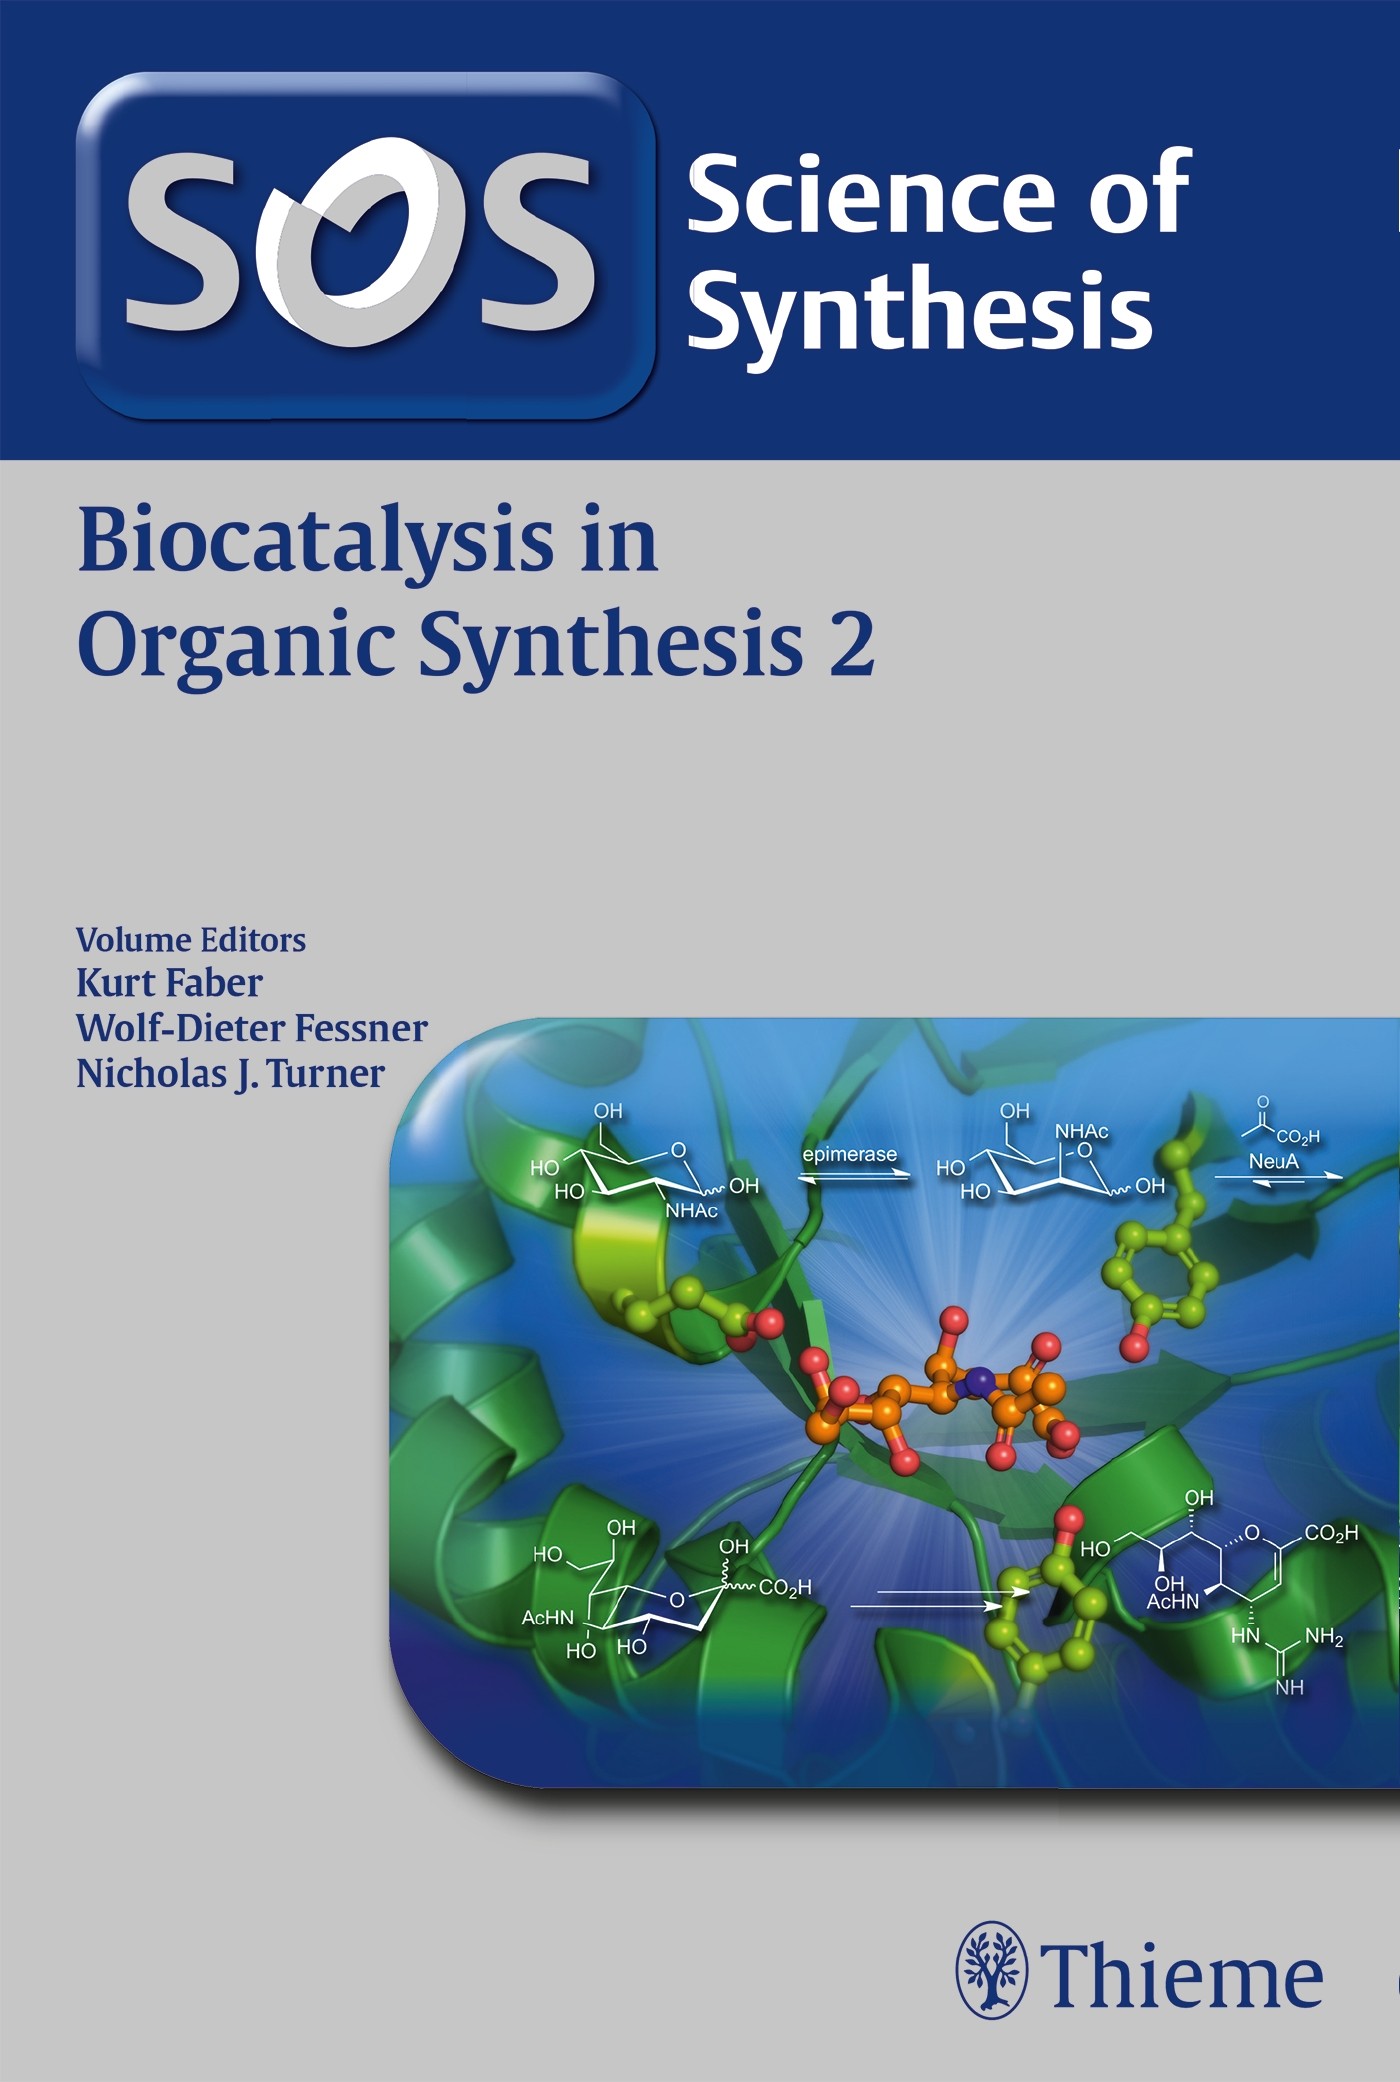 Science of Synthesis: Biocatalysis in Organic Synthesis Vol. 2